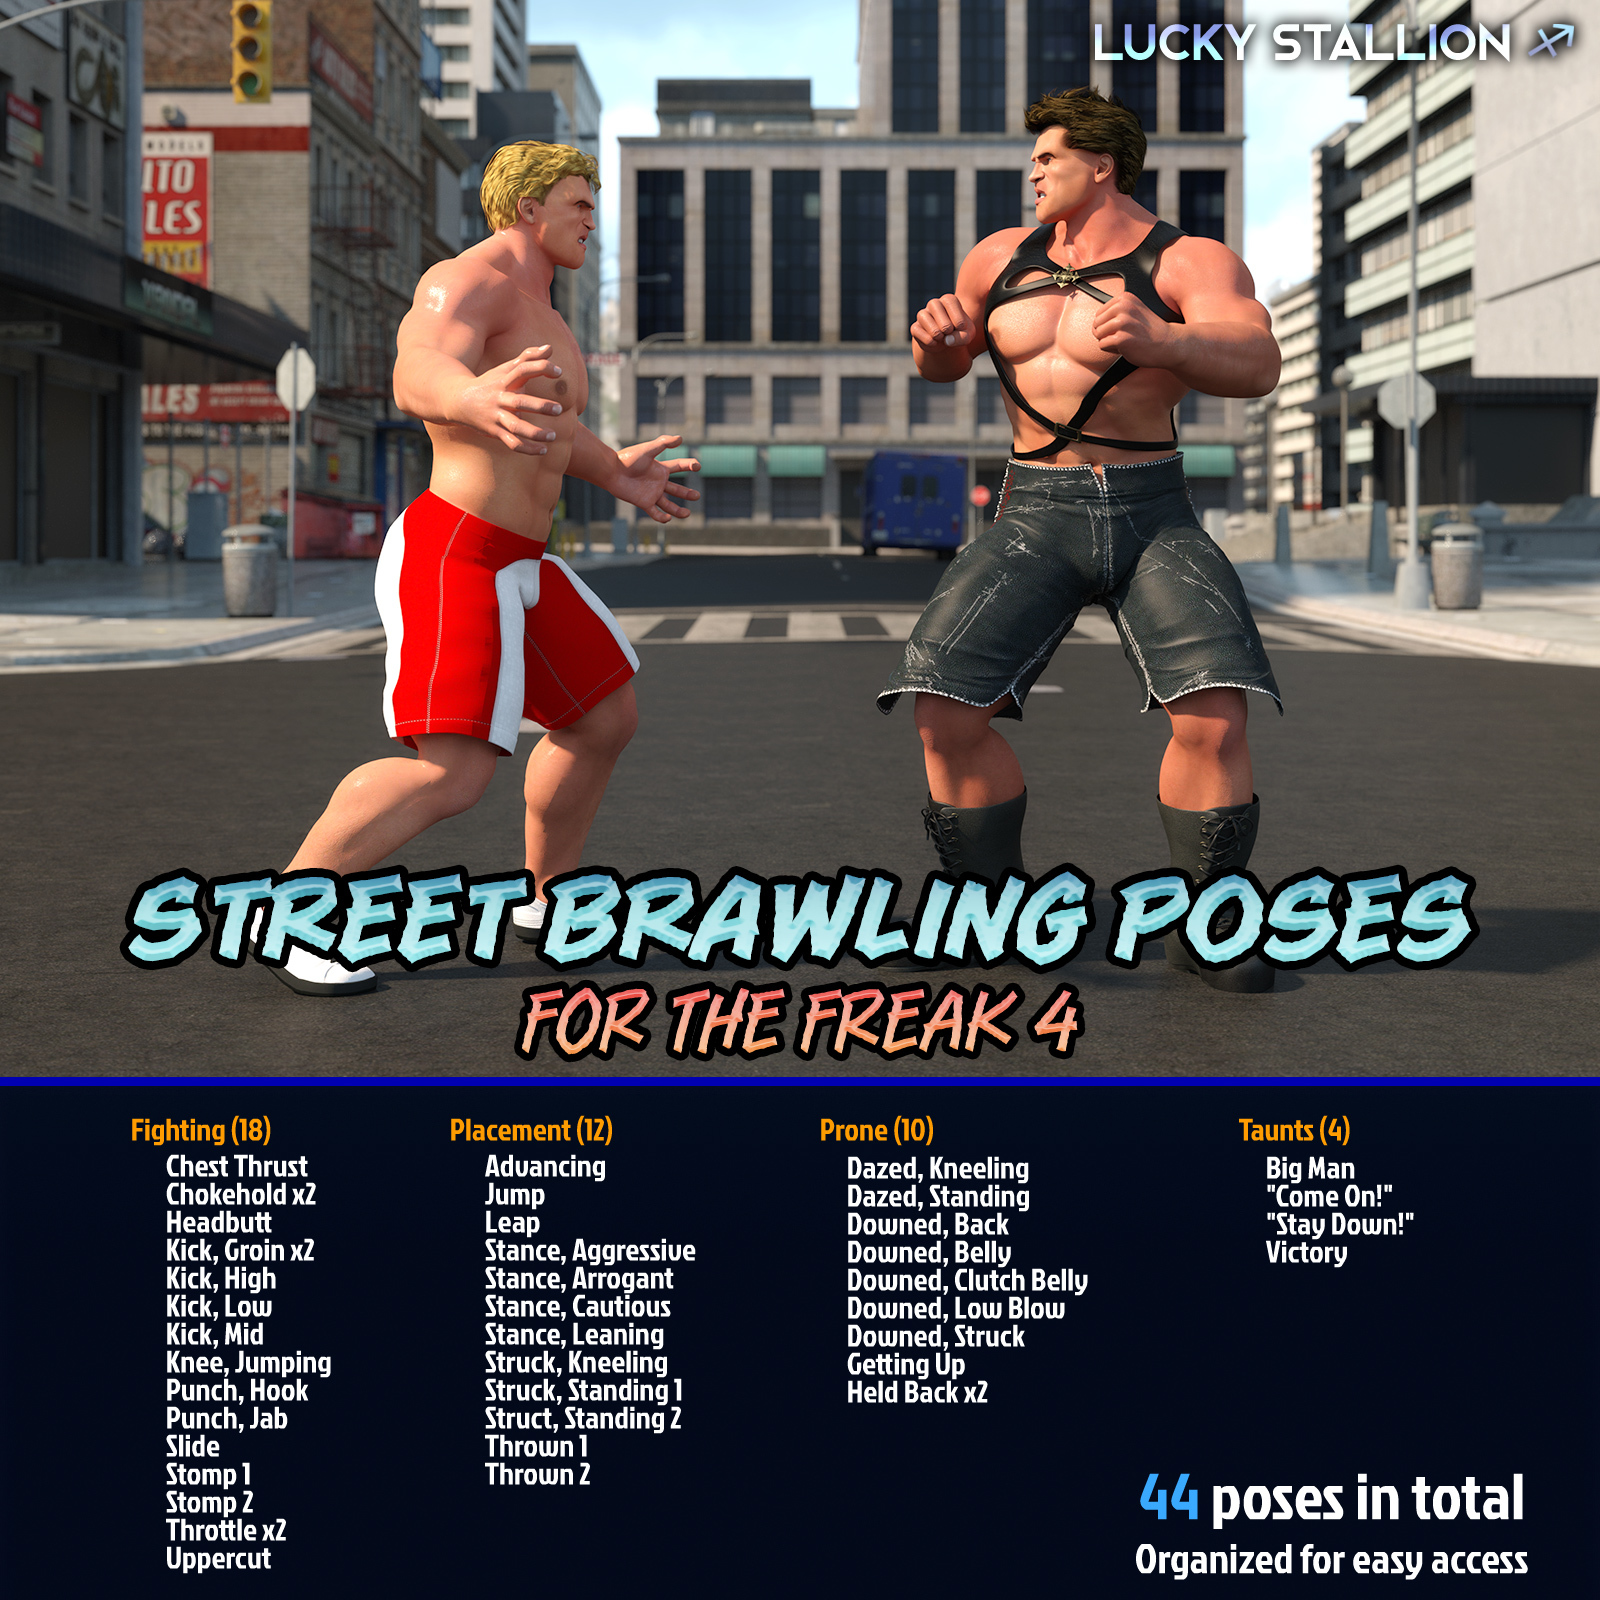 Street Brawling Poses for F4